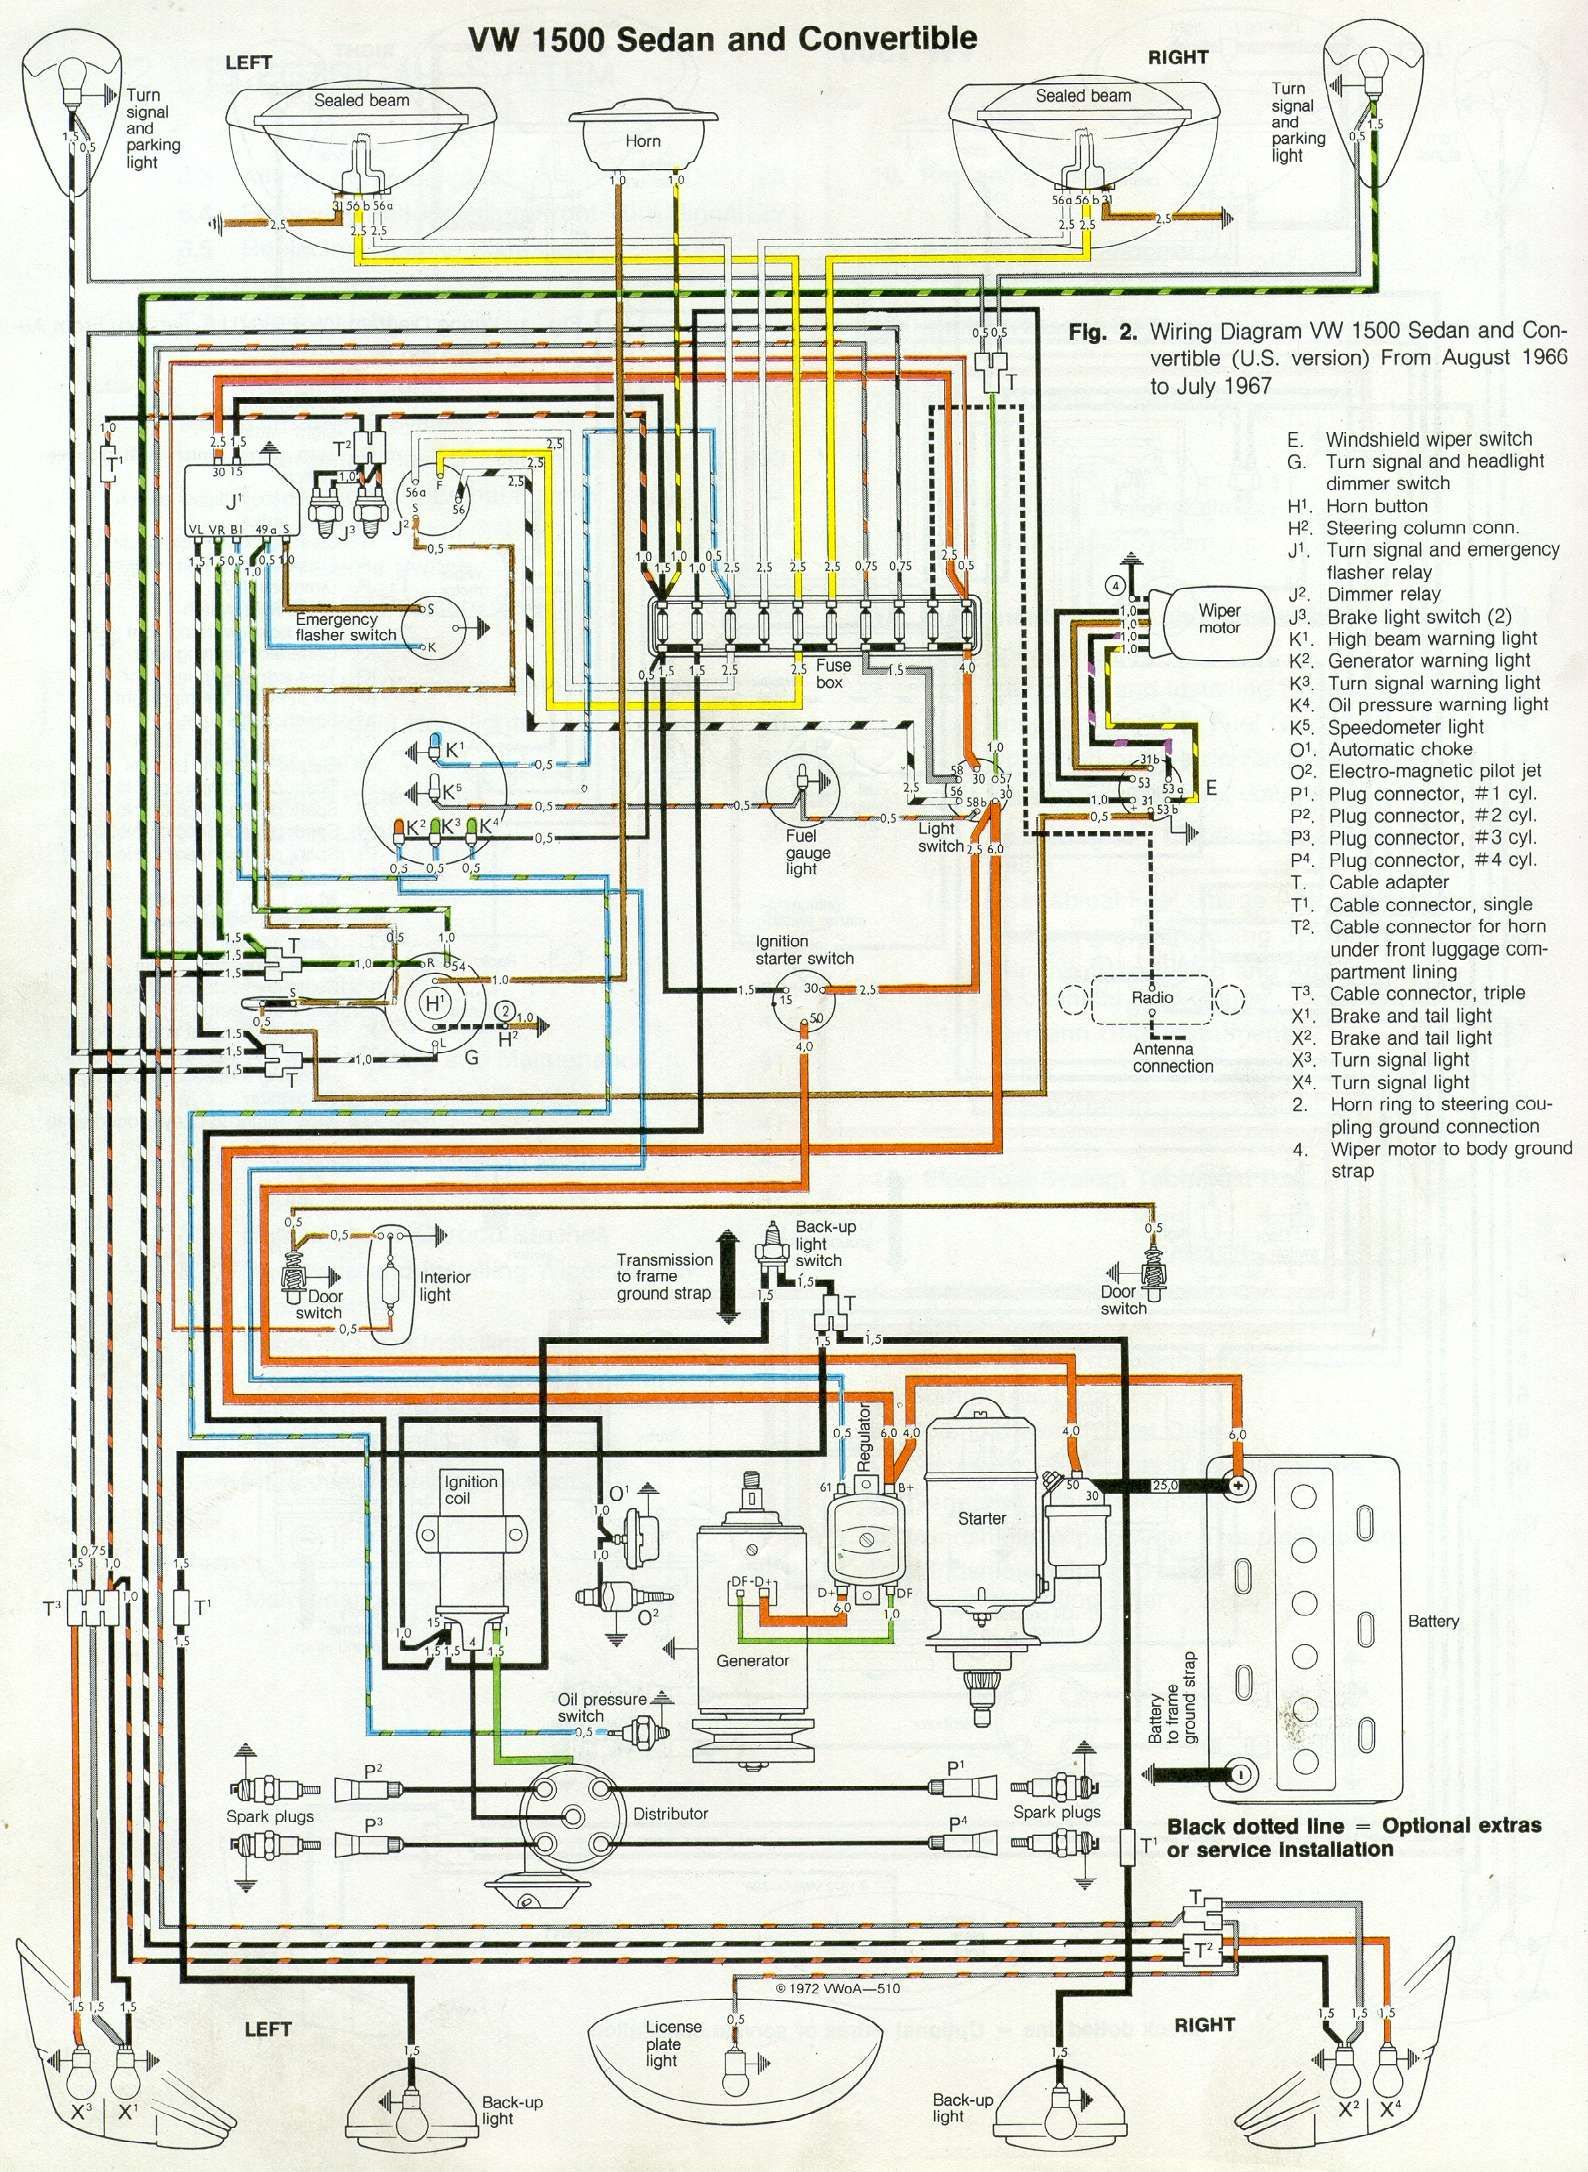 medium resolution of 1969 vw beetle wiring diagram wiring diagram experts1969 vw wiring diagram wiring diagram experts 1969 vw